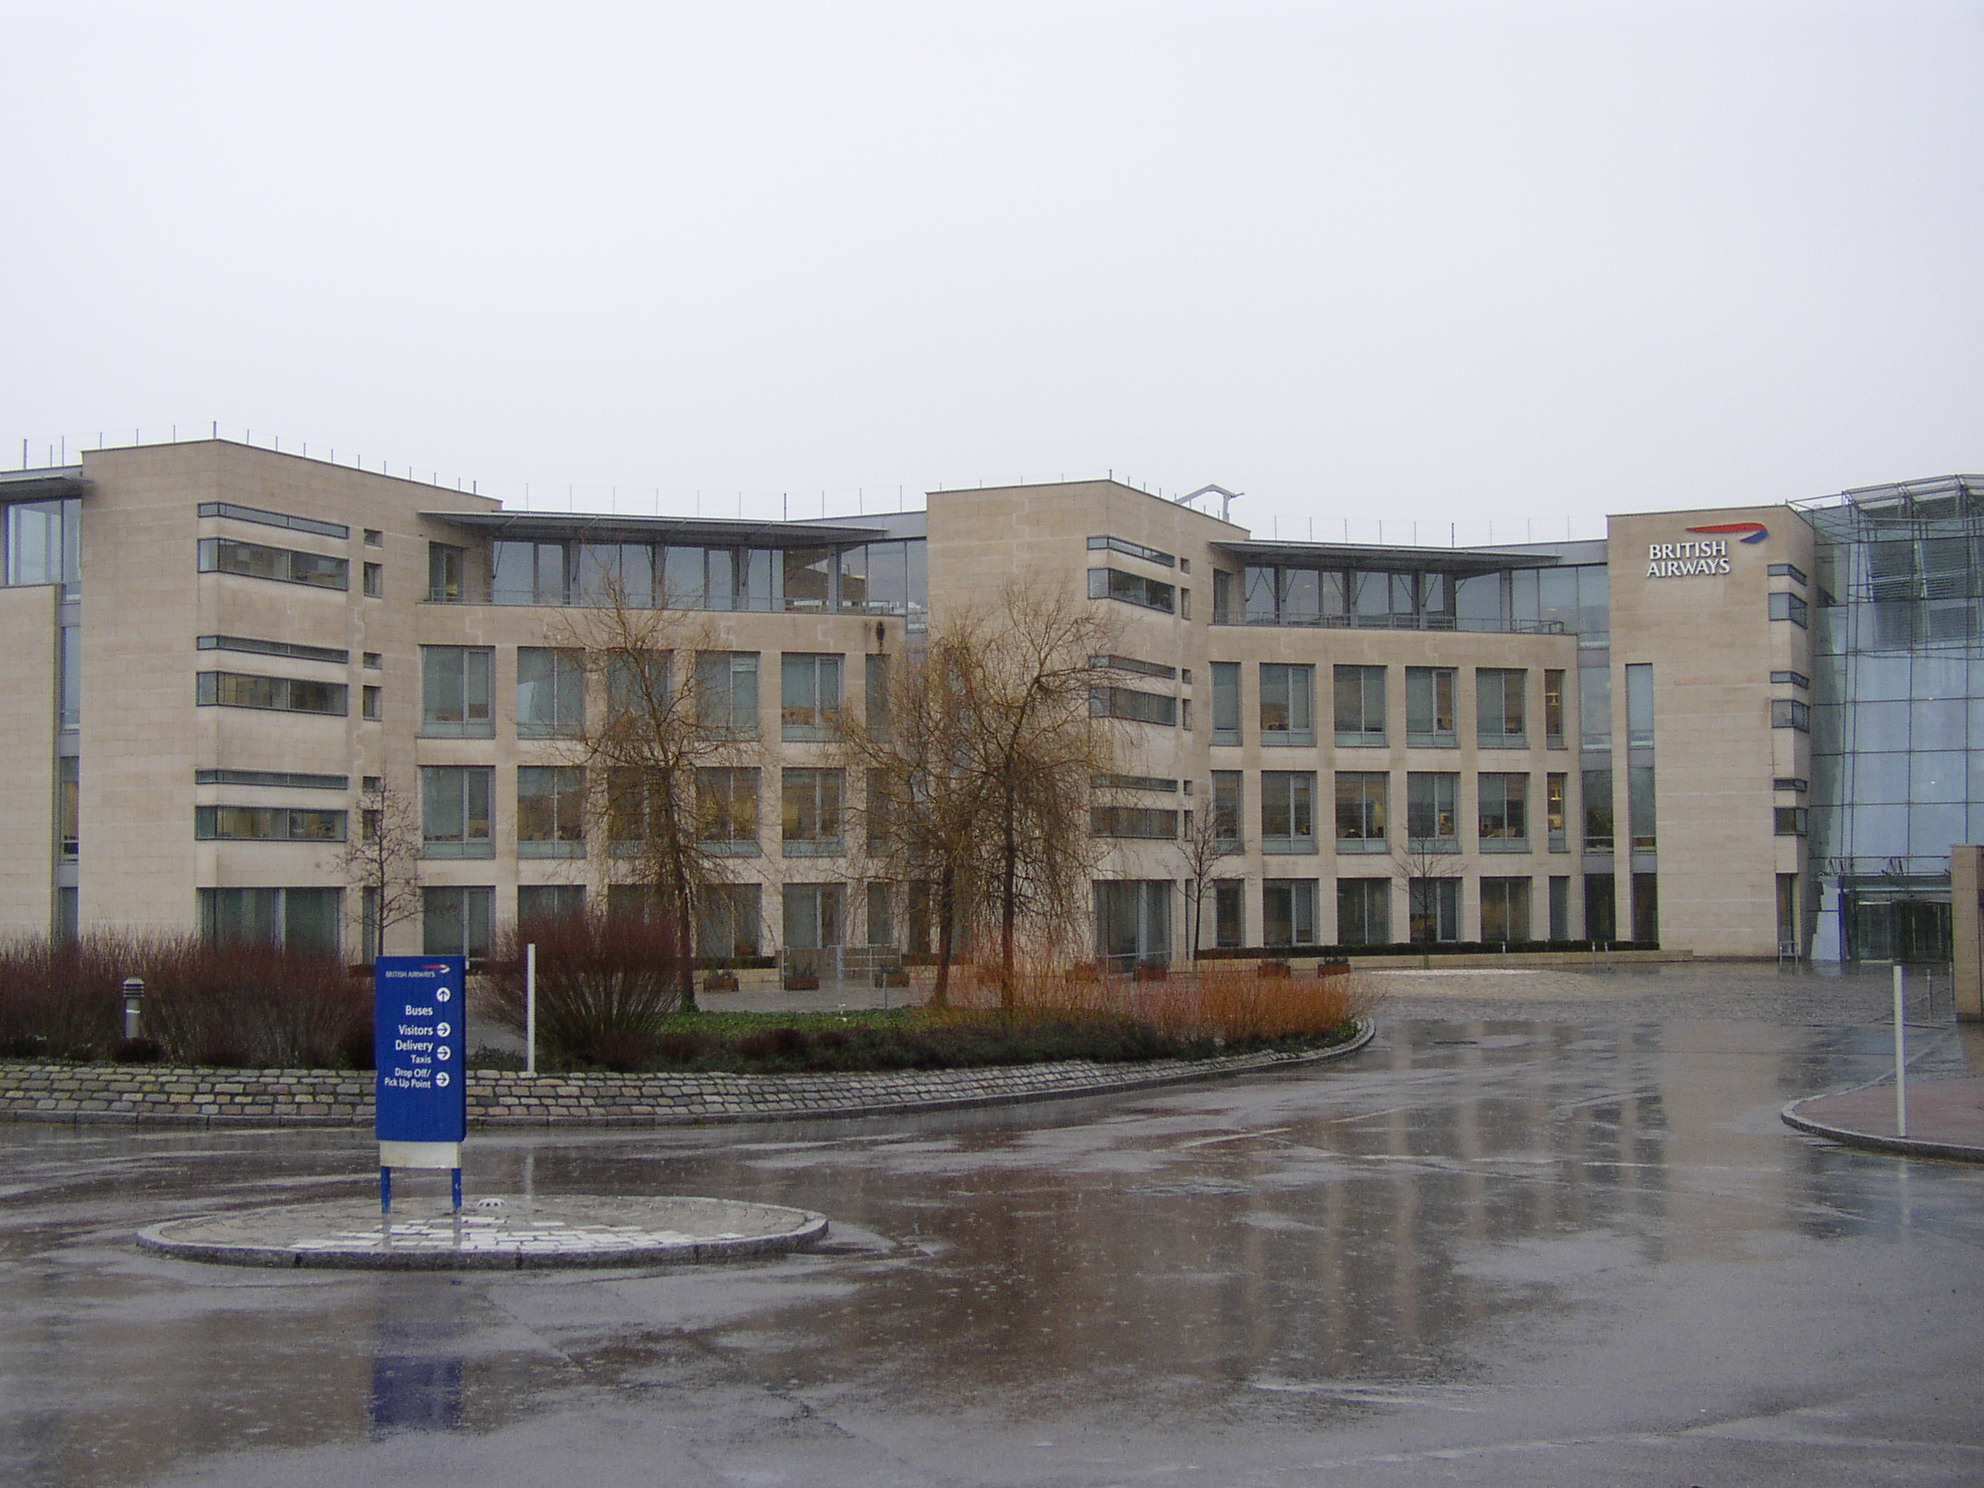 Frost resistant Chamesson B7 French limestone cladding stone on British Airways HQ